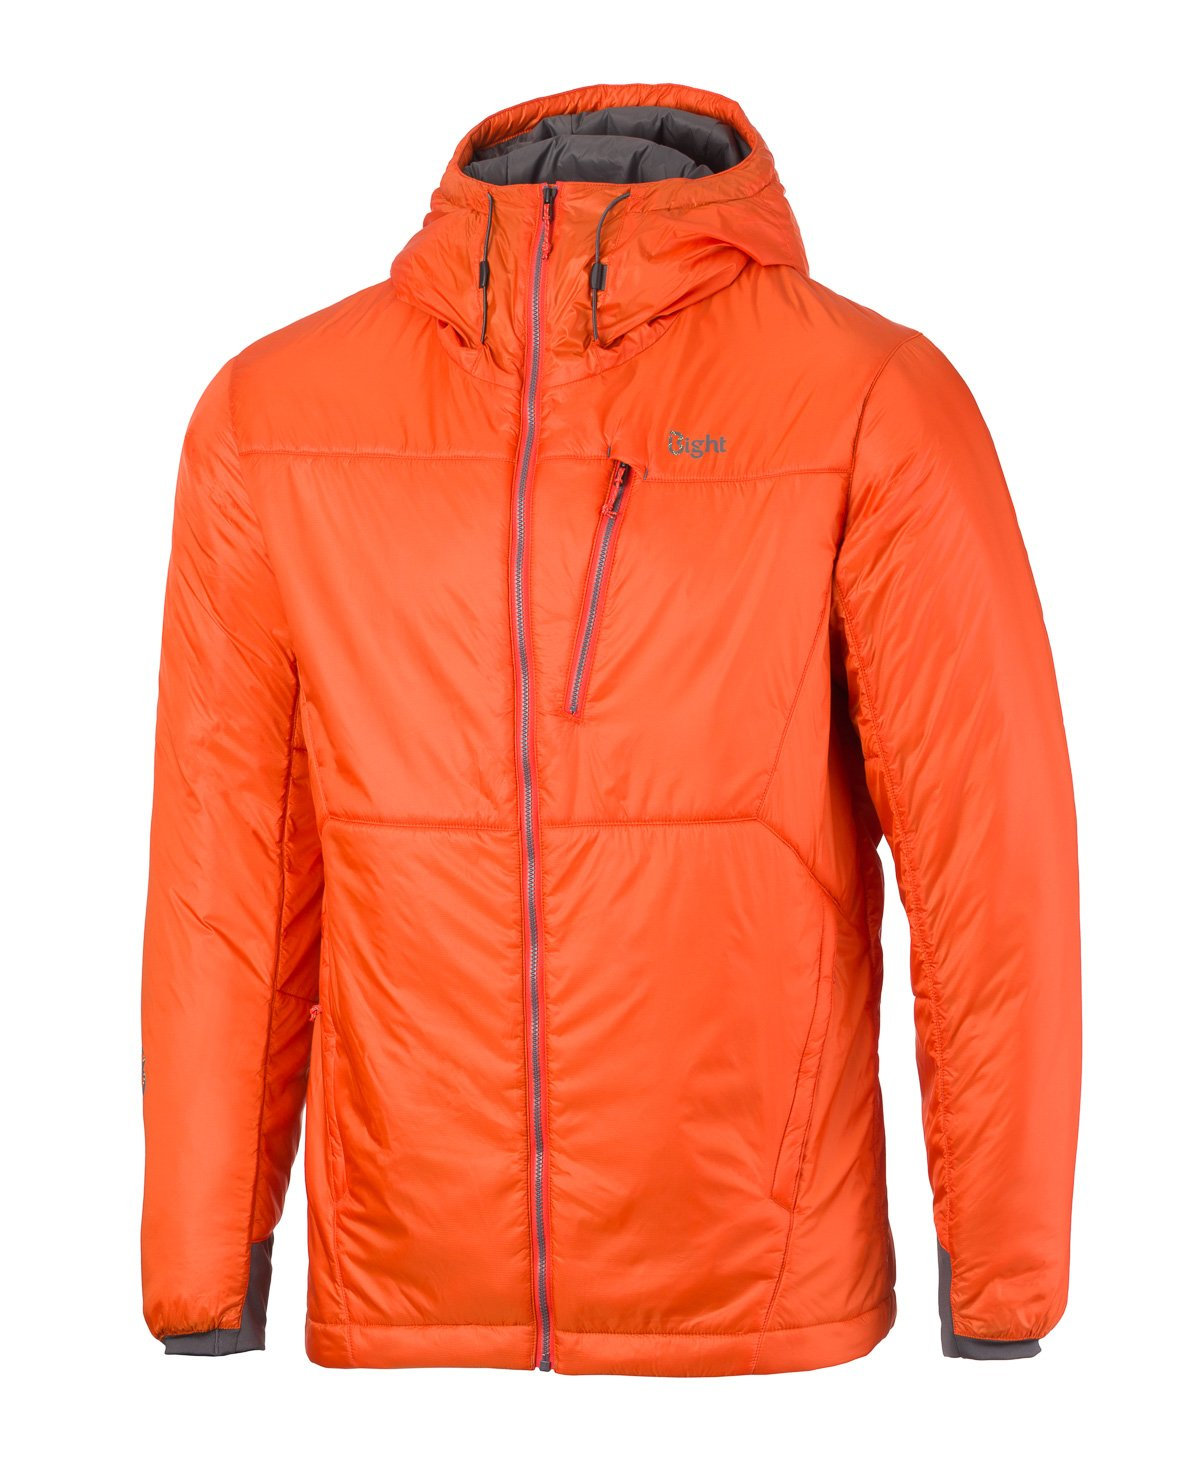 Men's 2020 Swelter Jacket